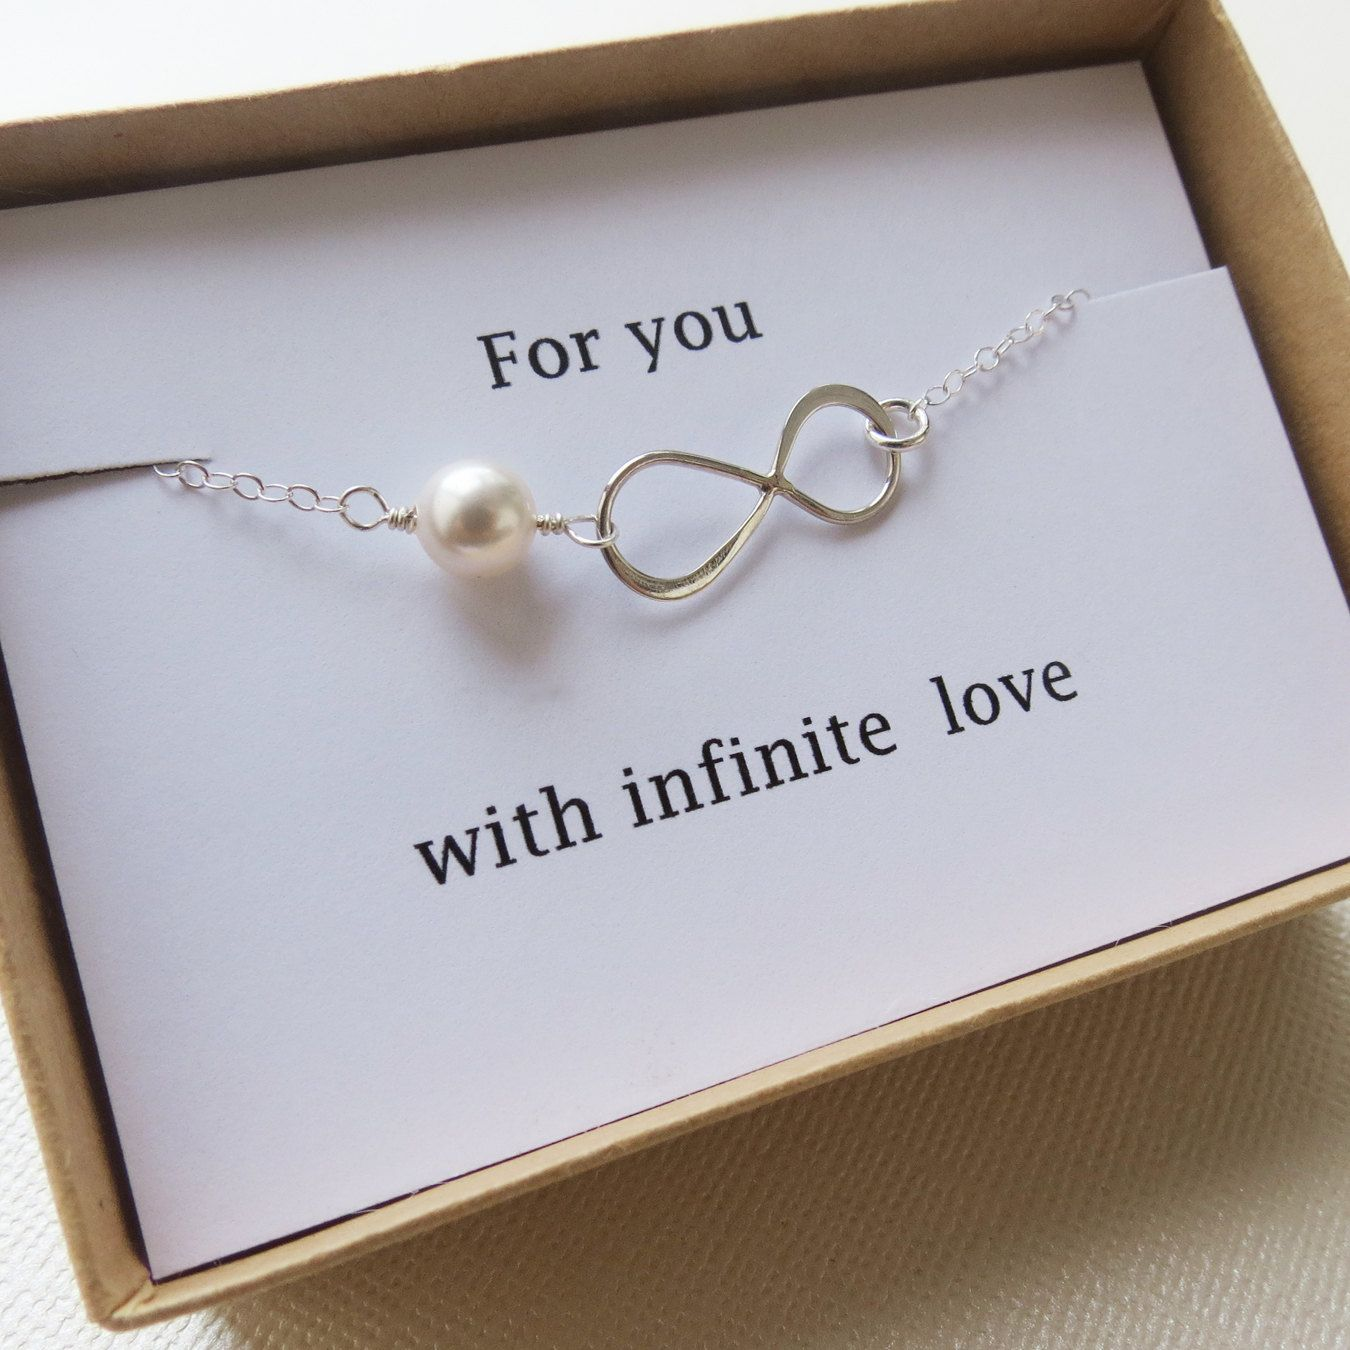 Christmas Gift Ideas For Girlfriend: Infinity Bracelet